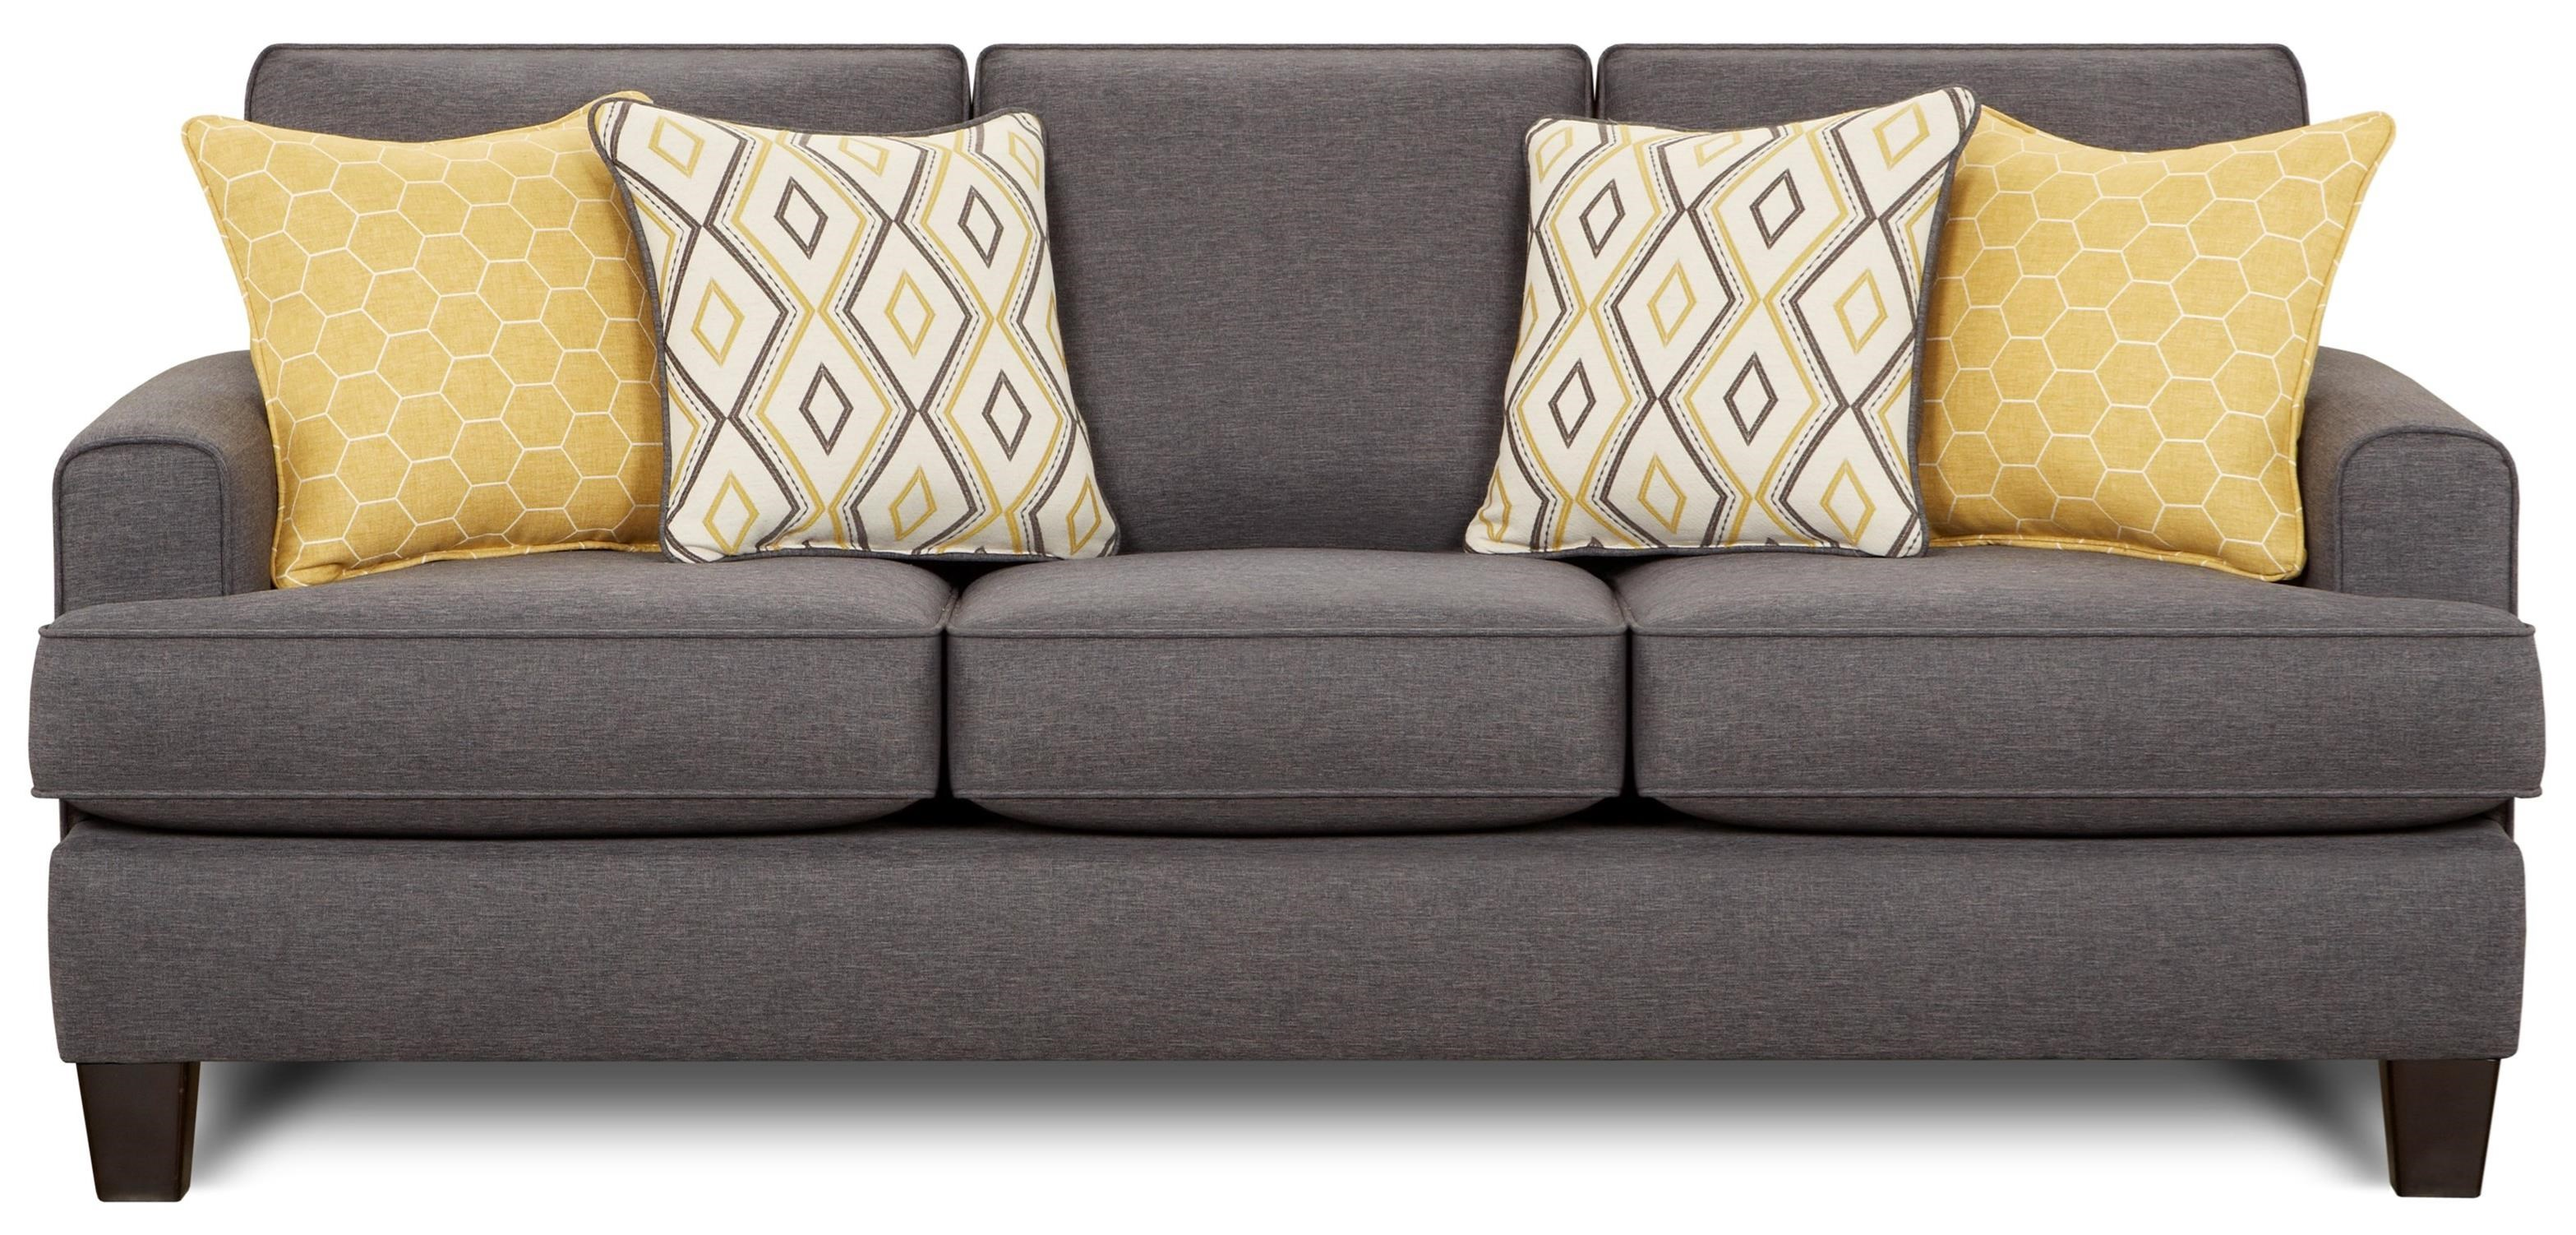 2600 Sofa by Fusion Furniture at Prime Brothers Furniture